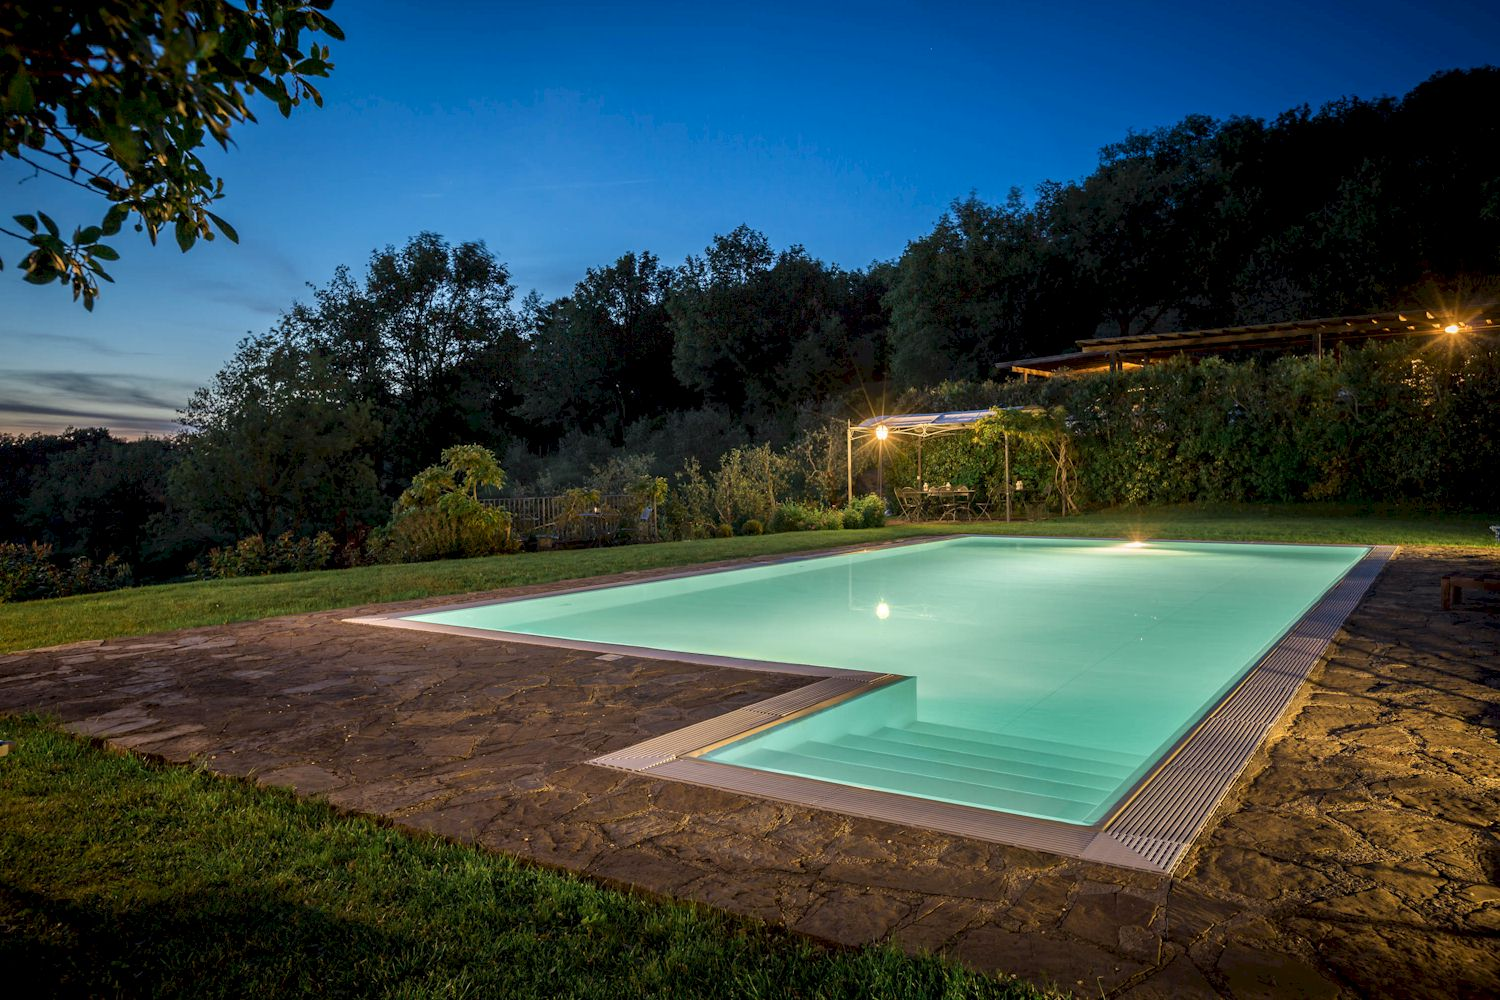 Agriturismo Le Cetinelle swimming pool